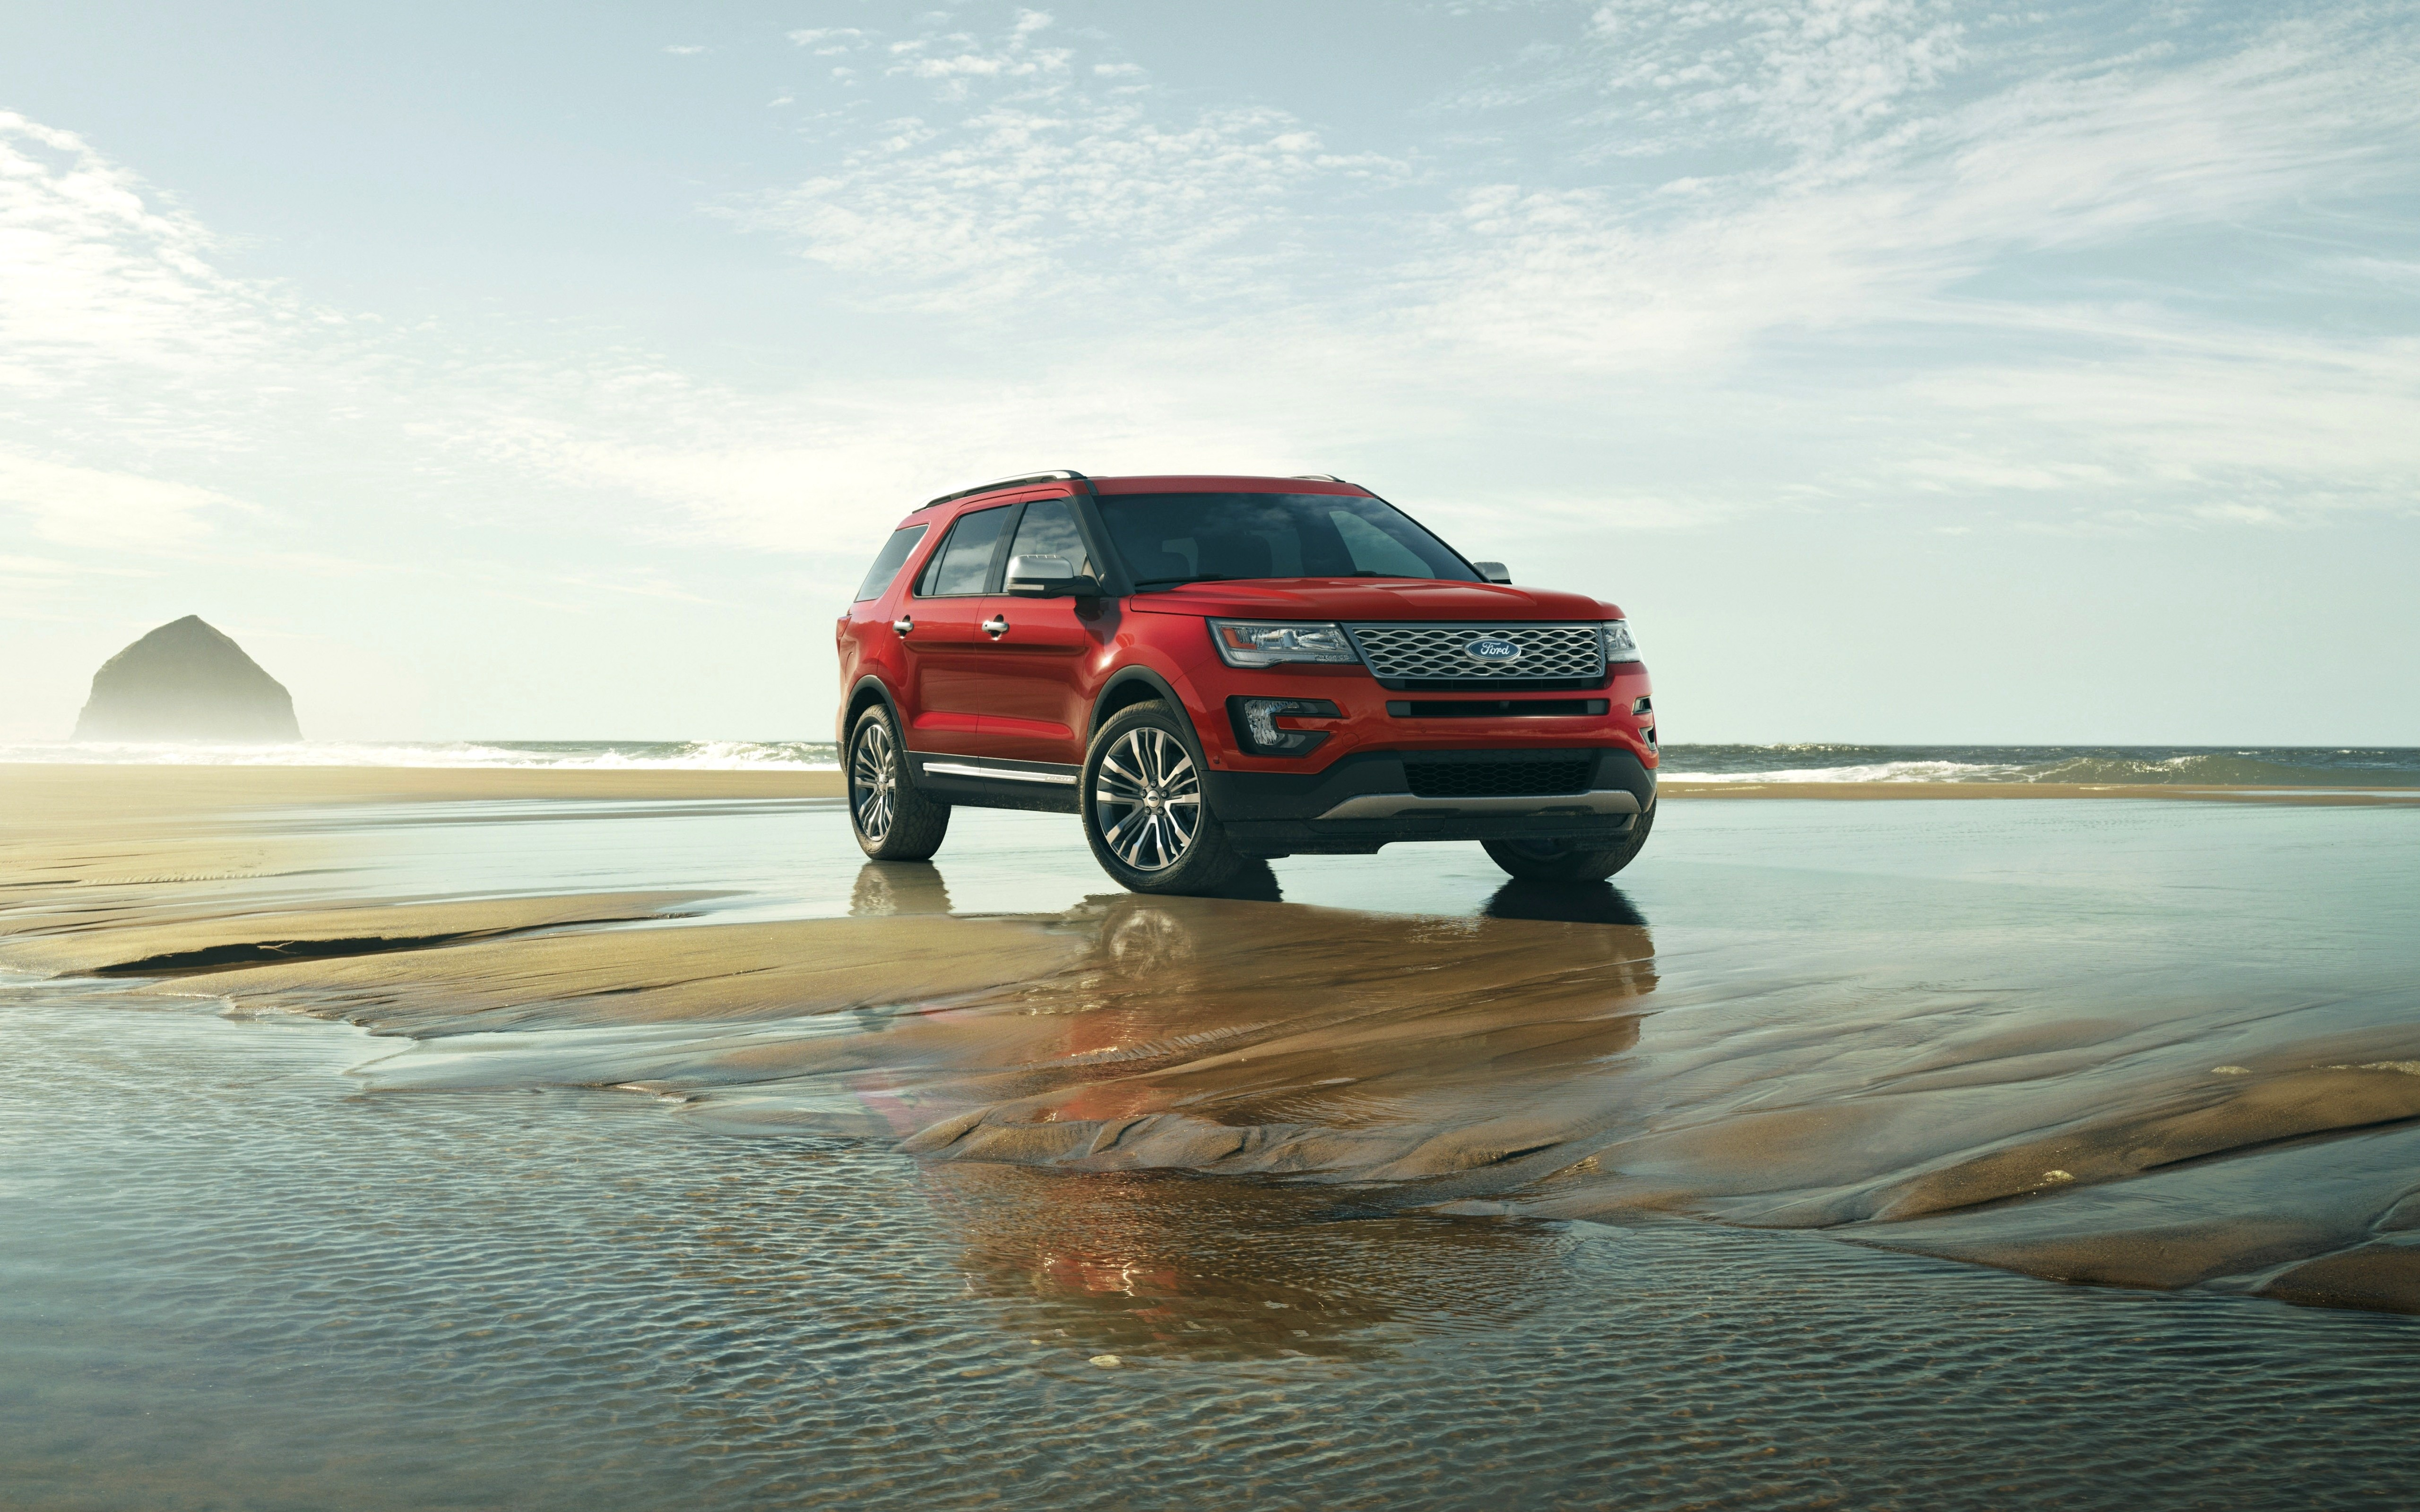 5120x3200 - Ford Explorer Wallpapers 26